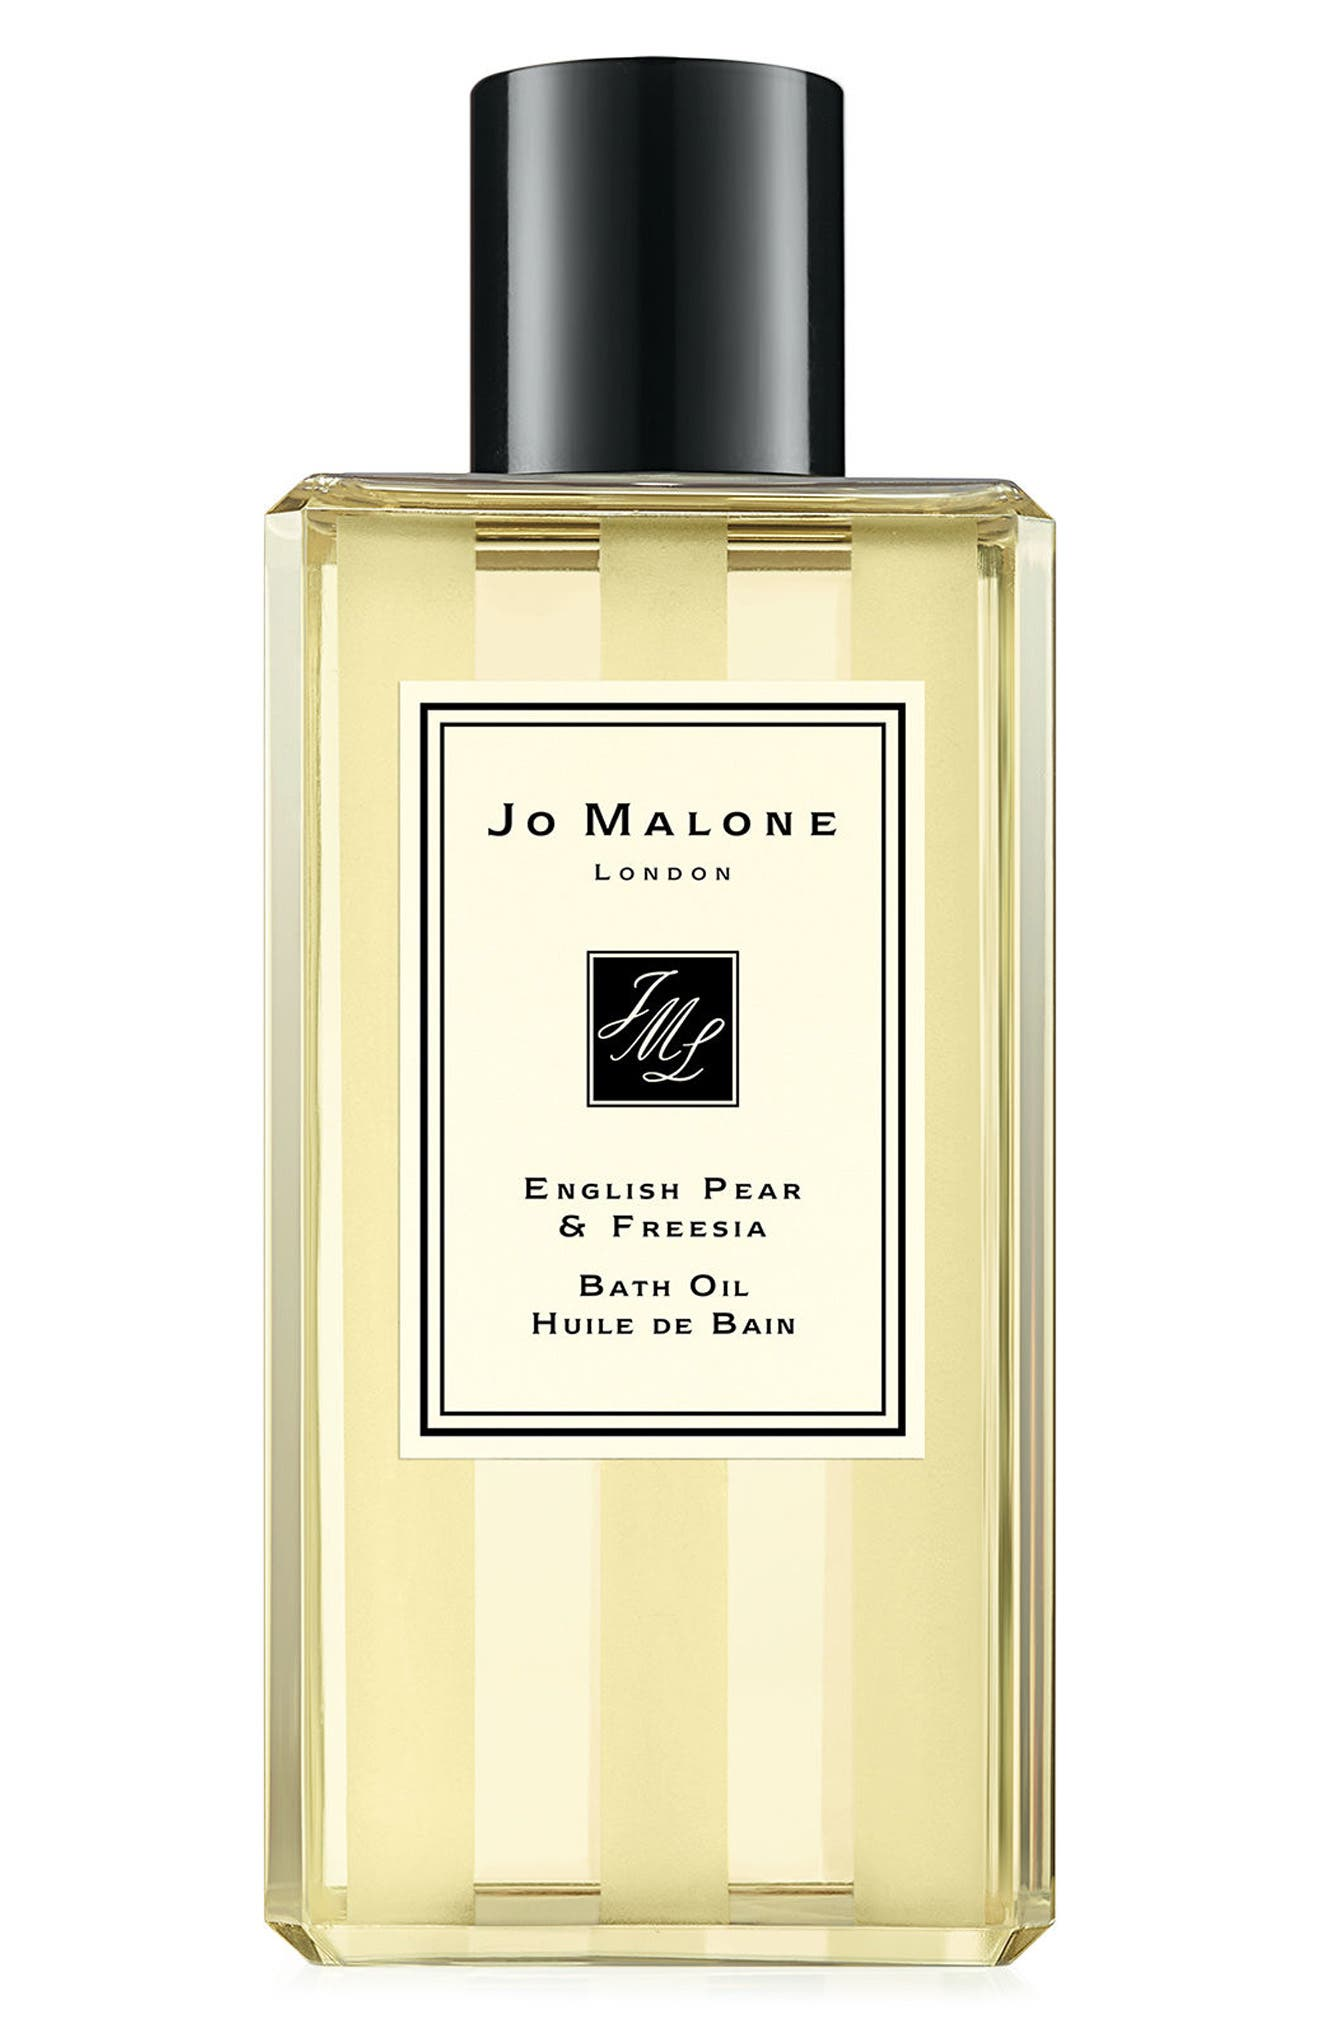 JO MALONE LONDON™ 'English Pear & Freesia' Bath